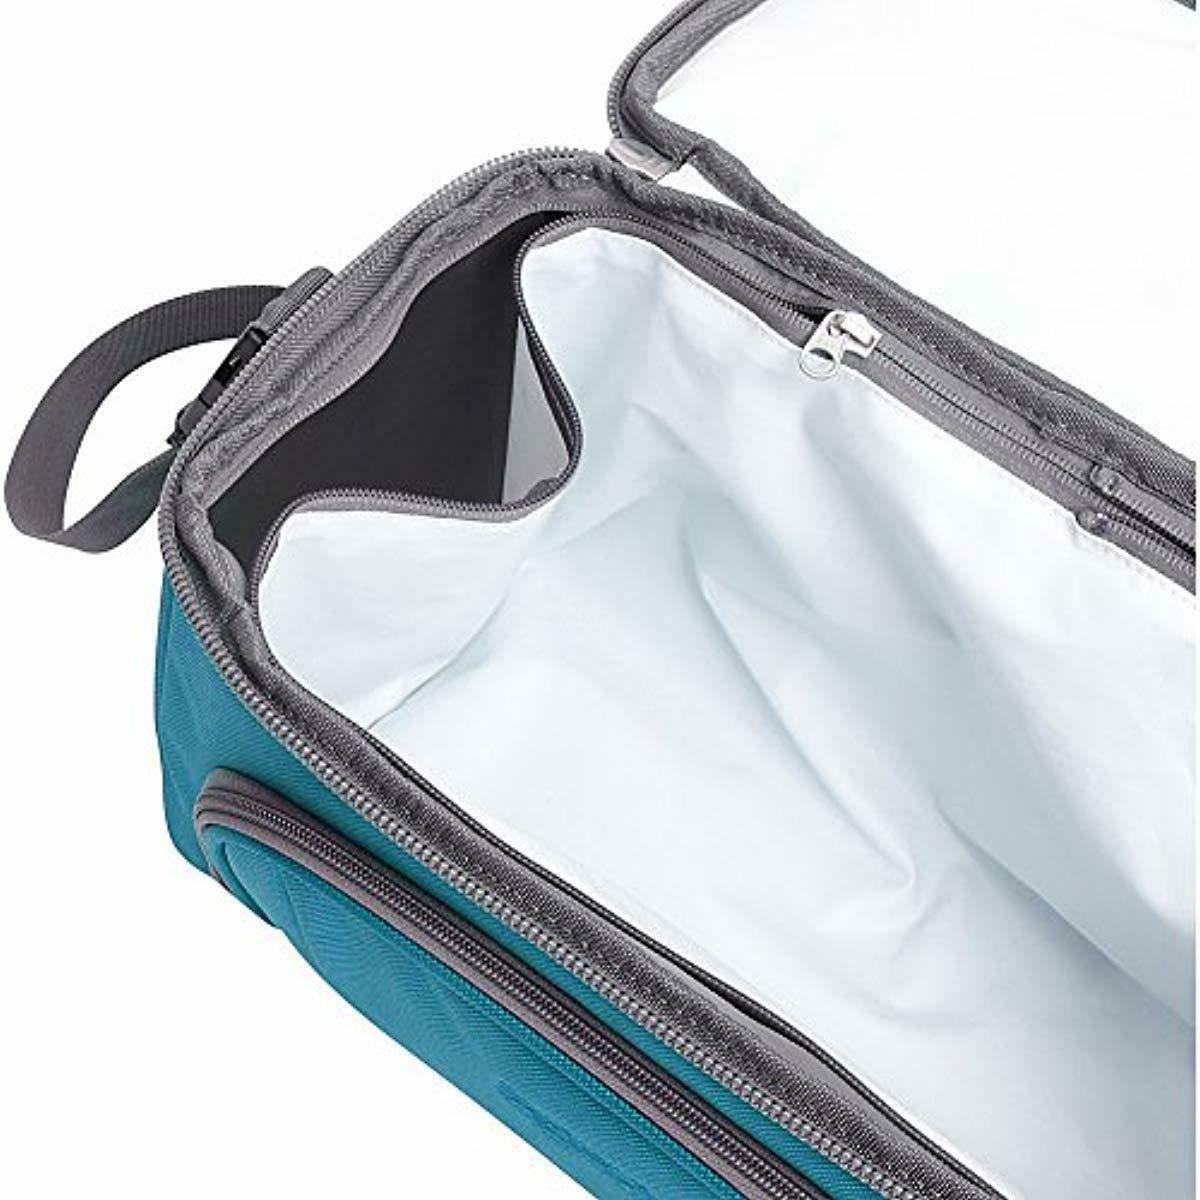 Ebags Cooler Insulated Lunch Box Work Picnic Portable Luggage Bag